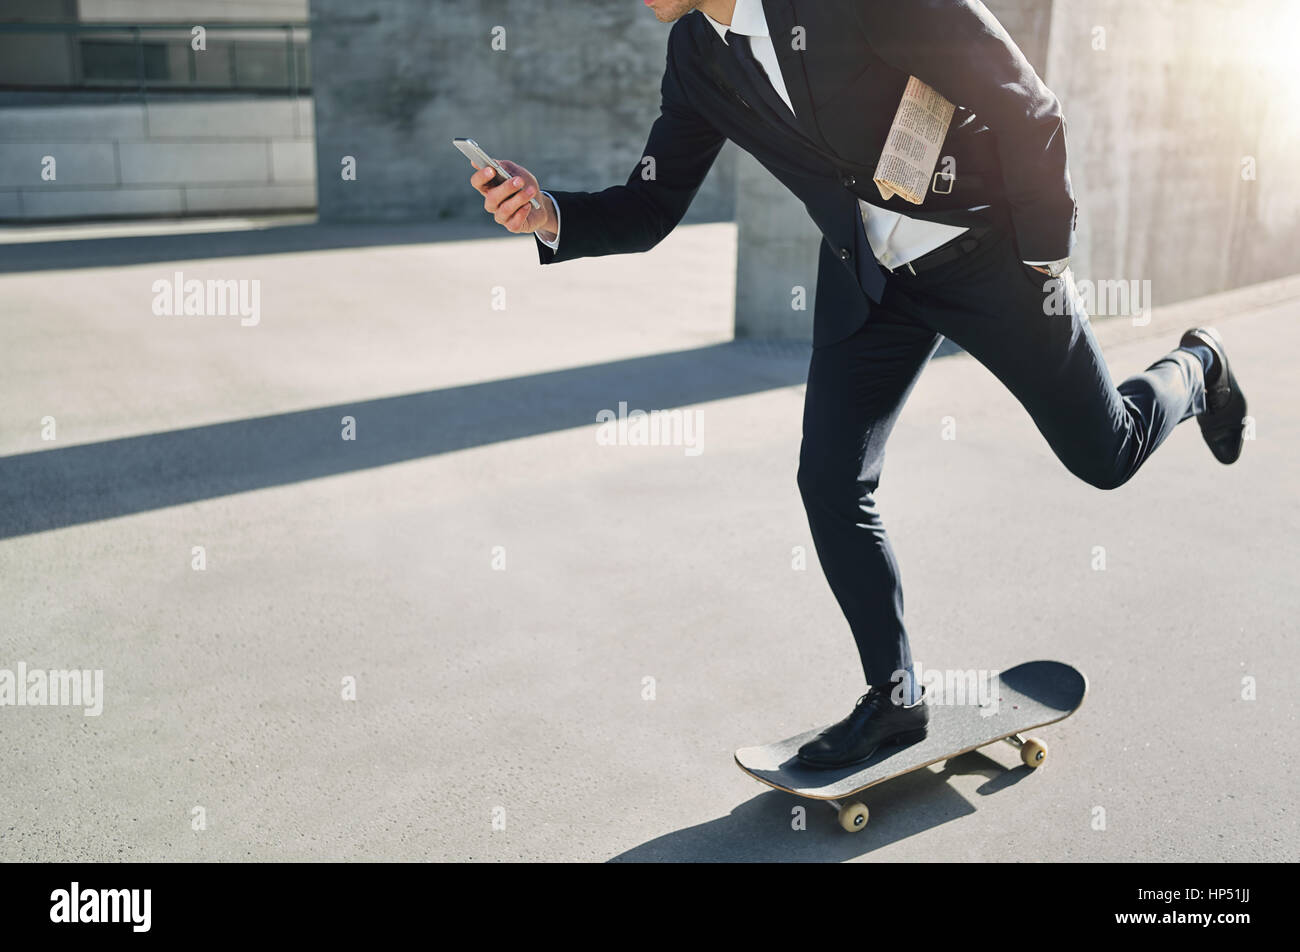 Front view of a businessman on a skateboard looking at his phone while moving - Stock Image